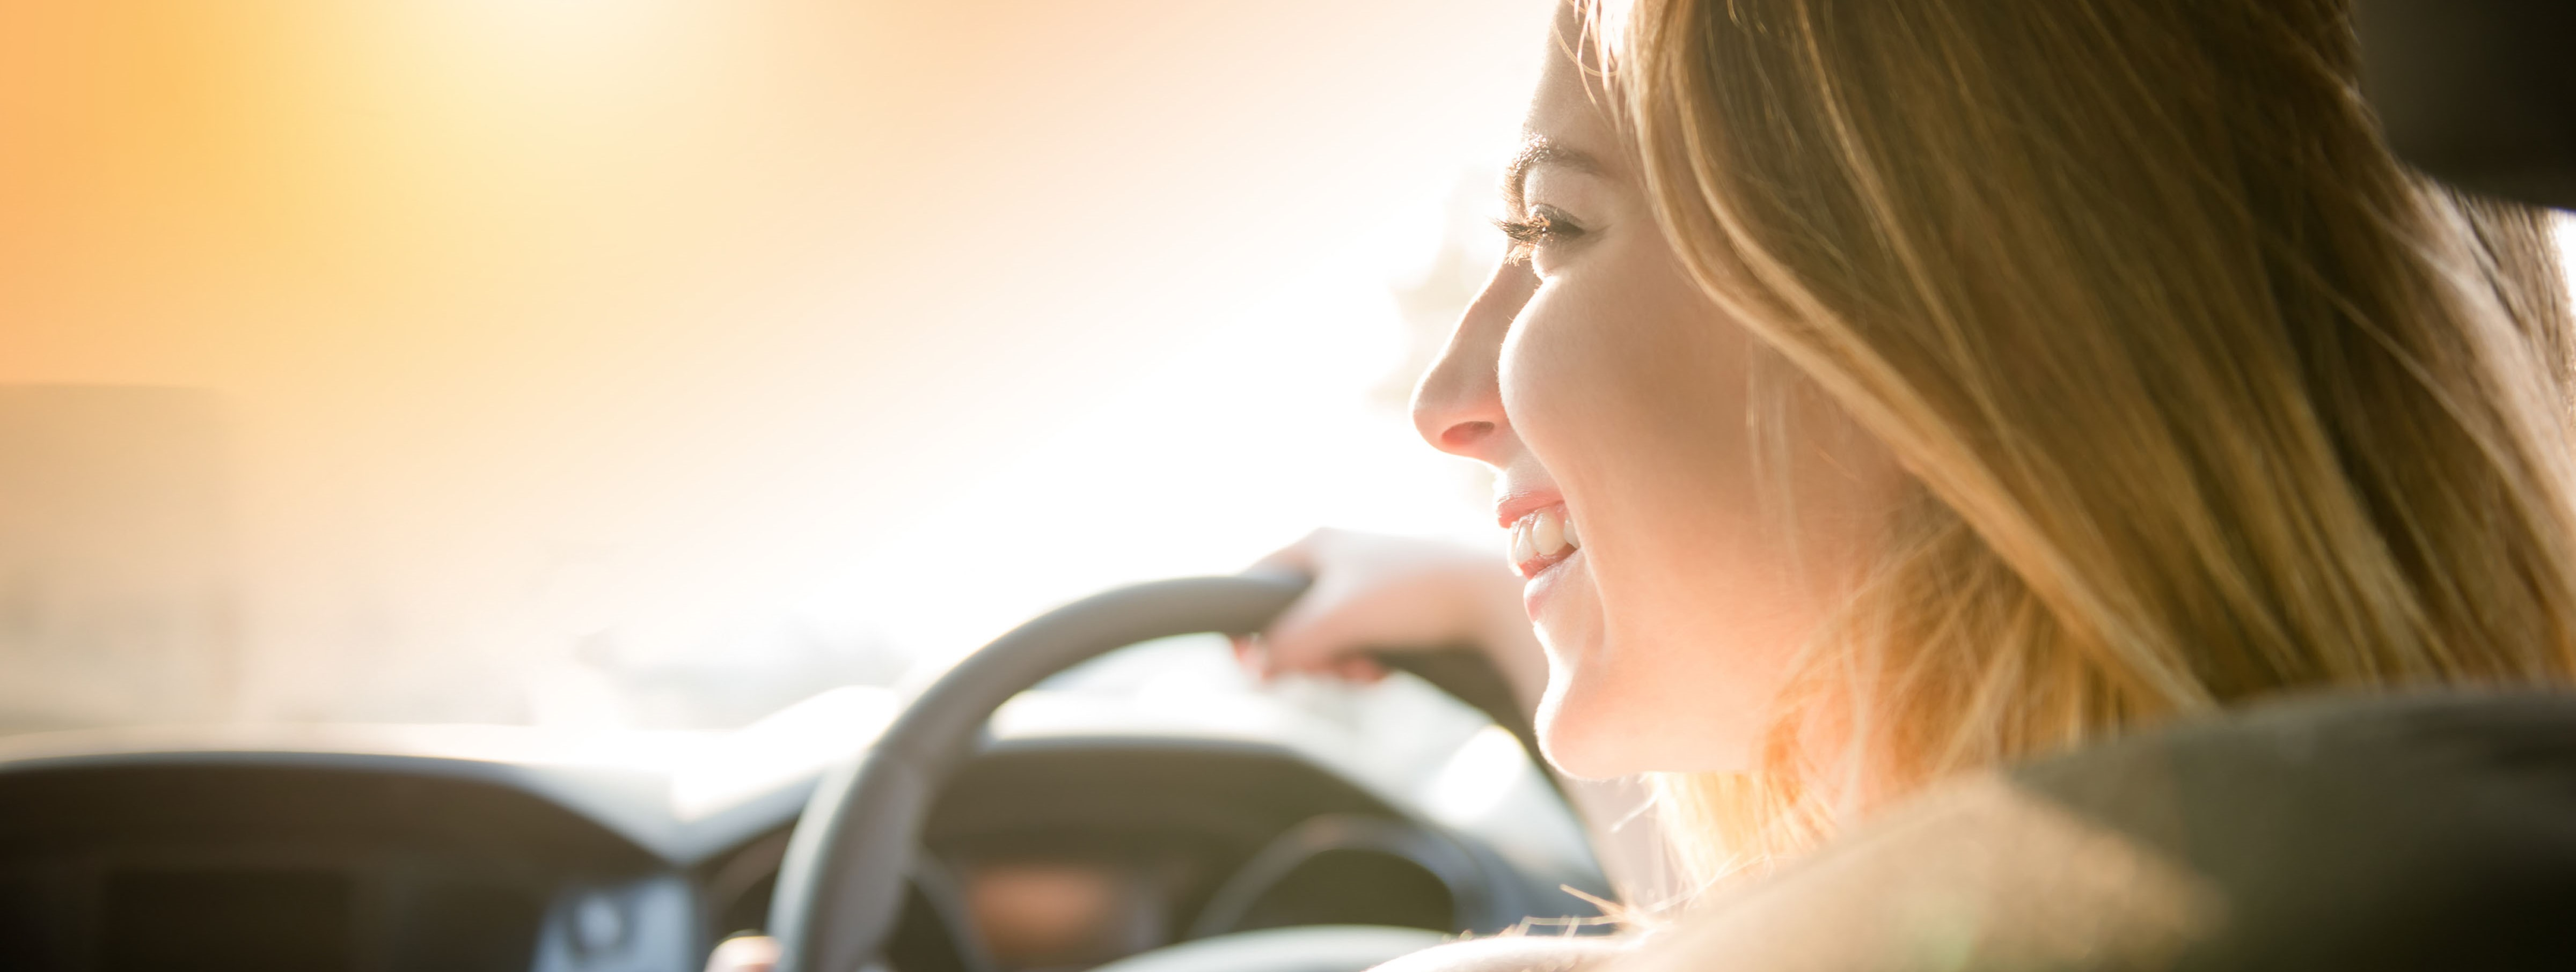 Get Driving Lessons To Regain Confidence | LTrent Driving School